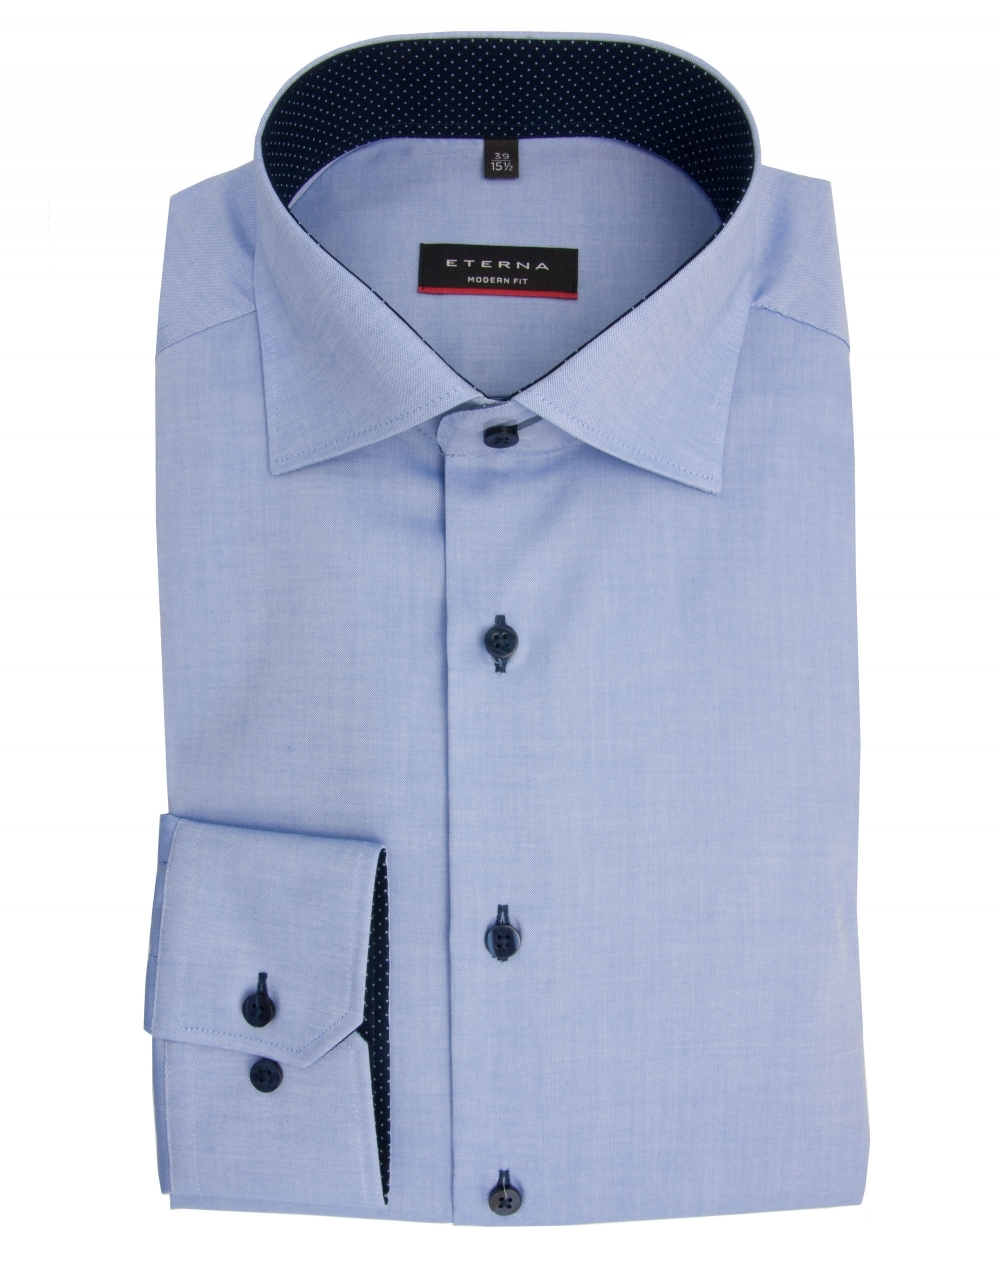 Eterna Oxford white shirt